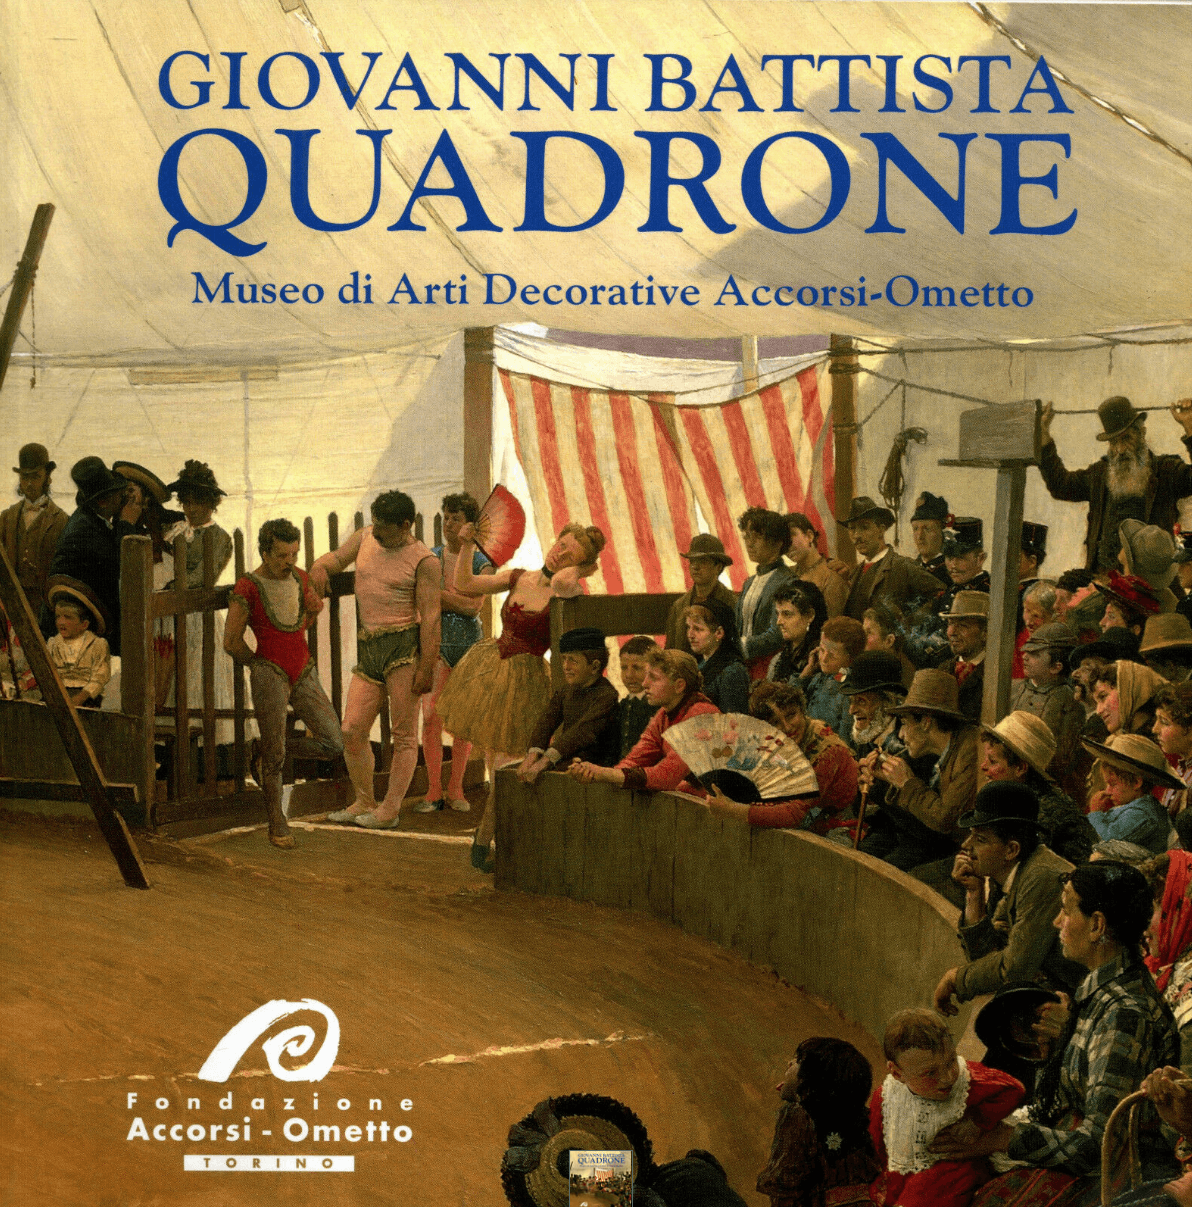 Giovanni Battista Quadrone